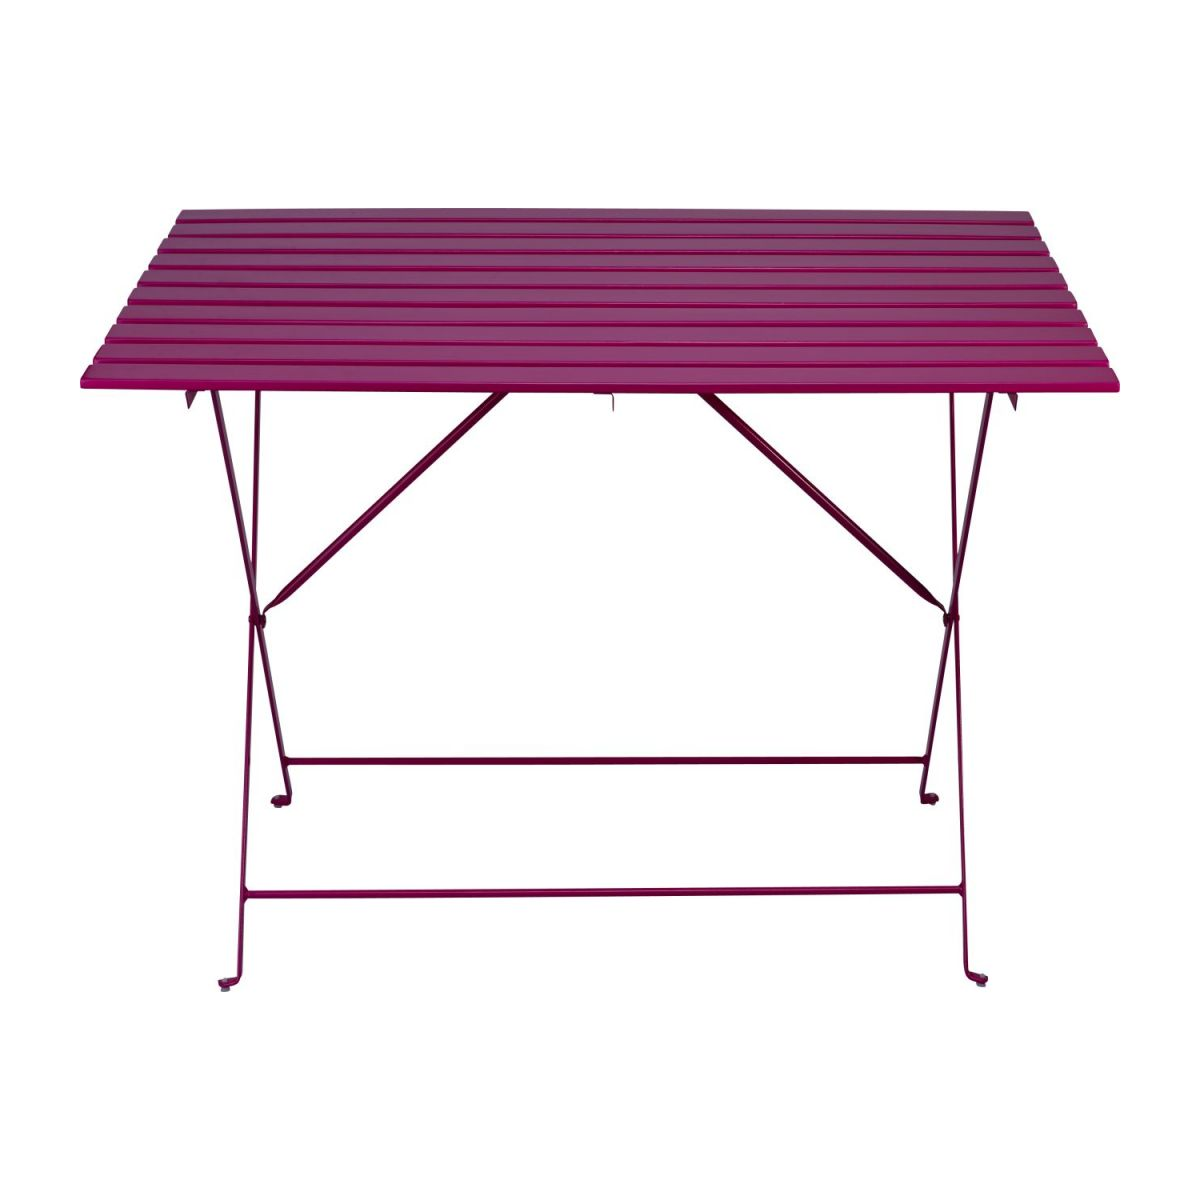 Table Jardin Habitat - Idées De Design - Websiteodit.com